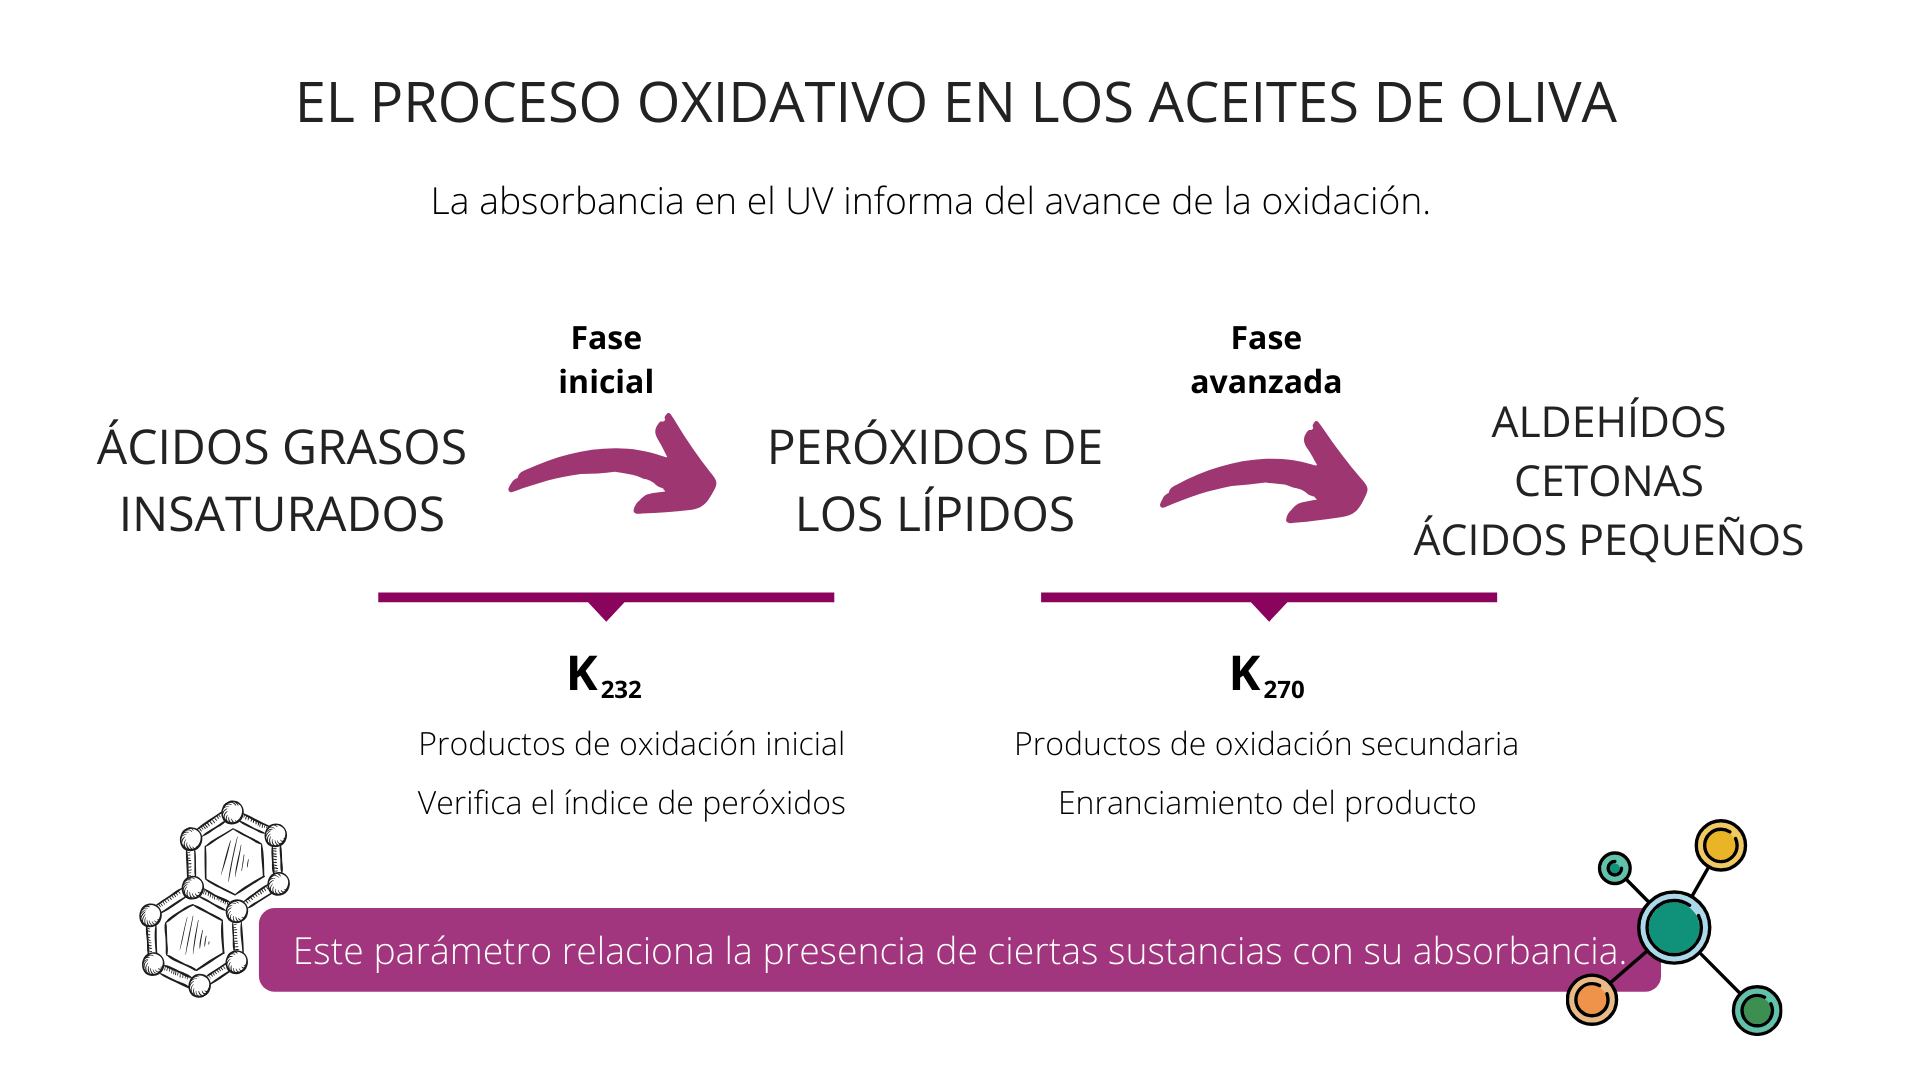 Parámetos analíticos aceites oliva 4